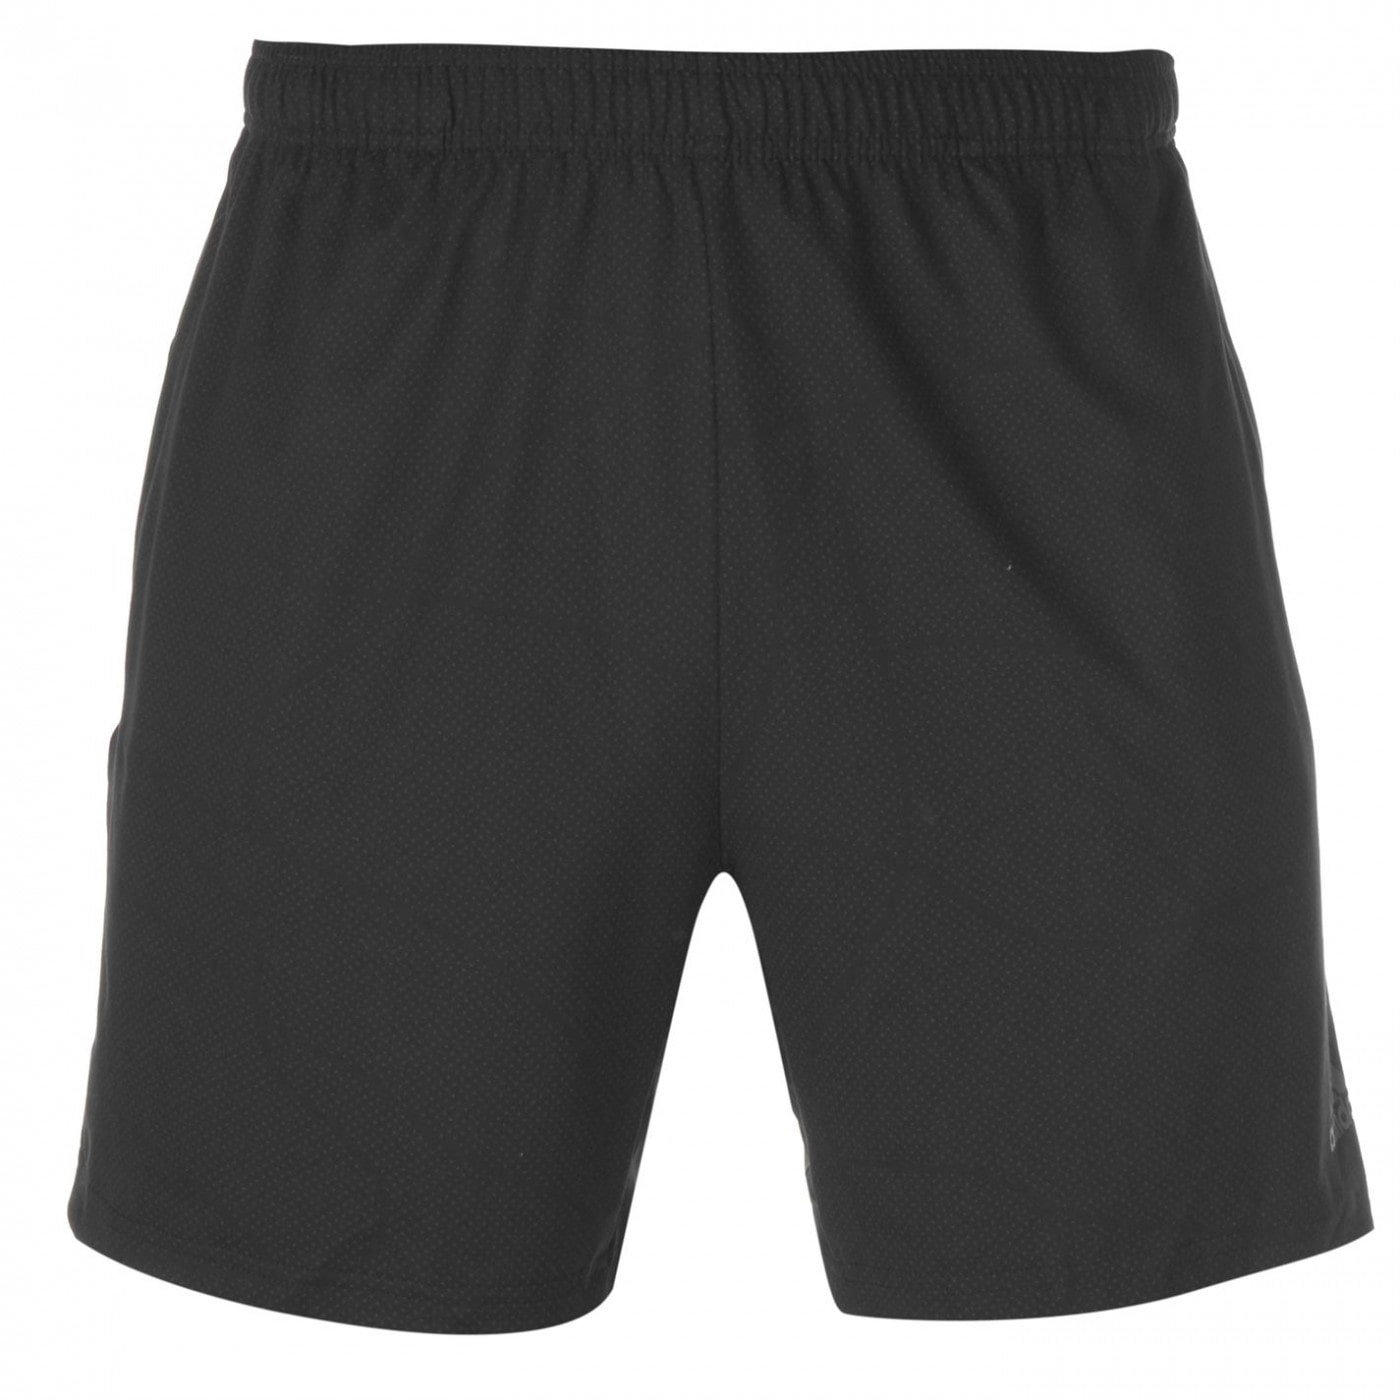 Adidas 4K Tech Shorts Mens